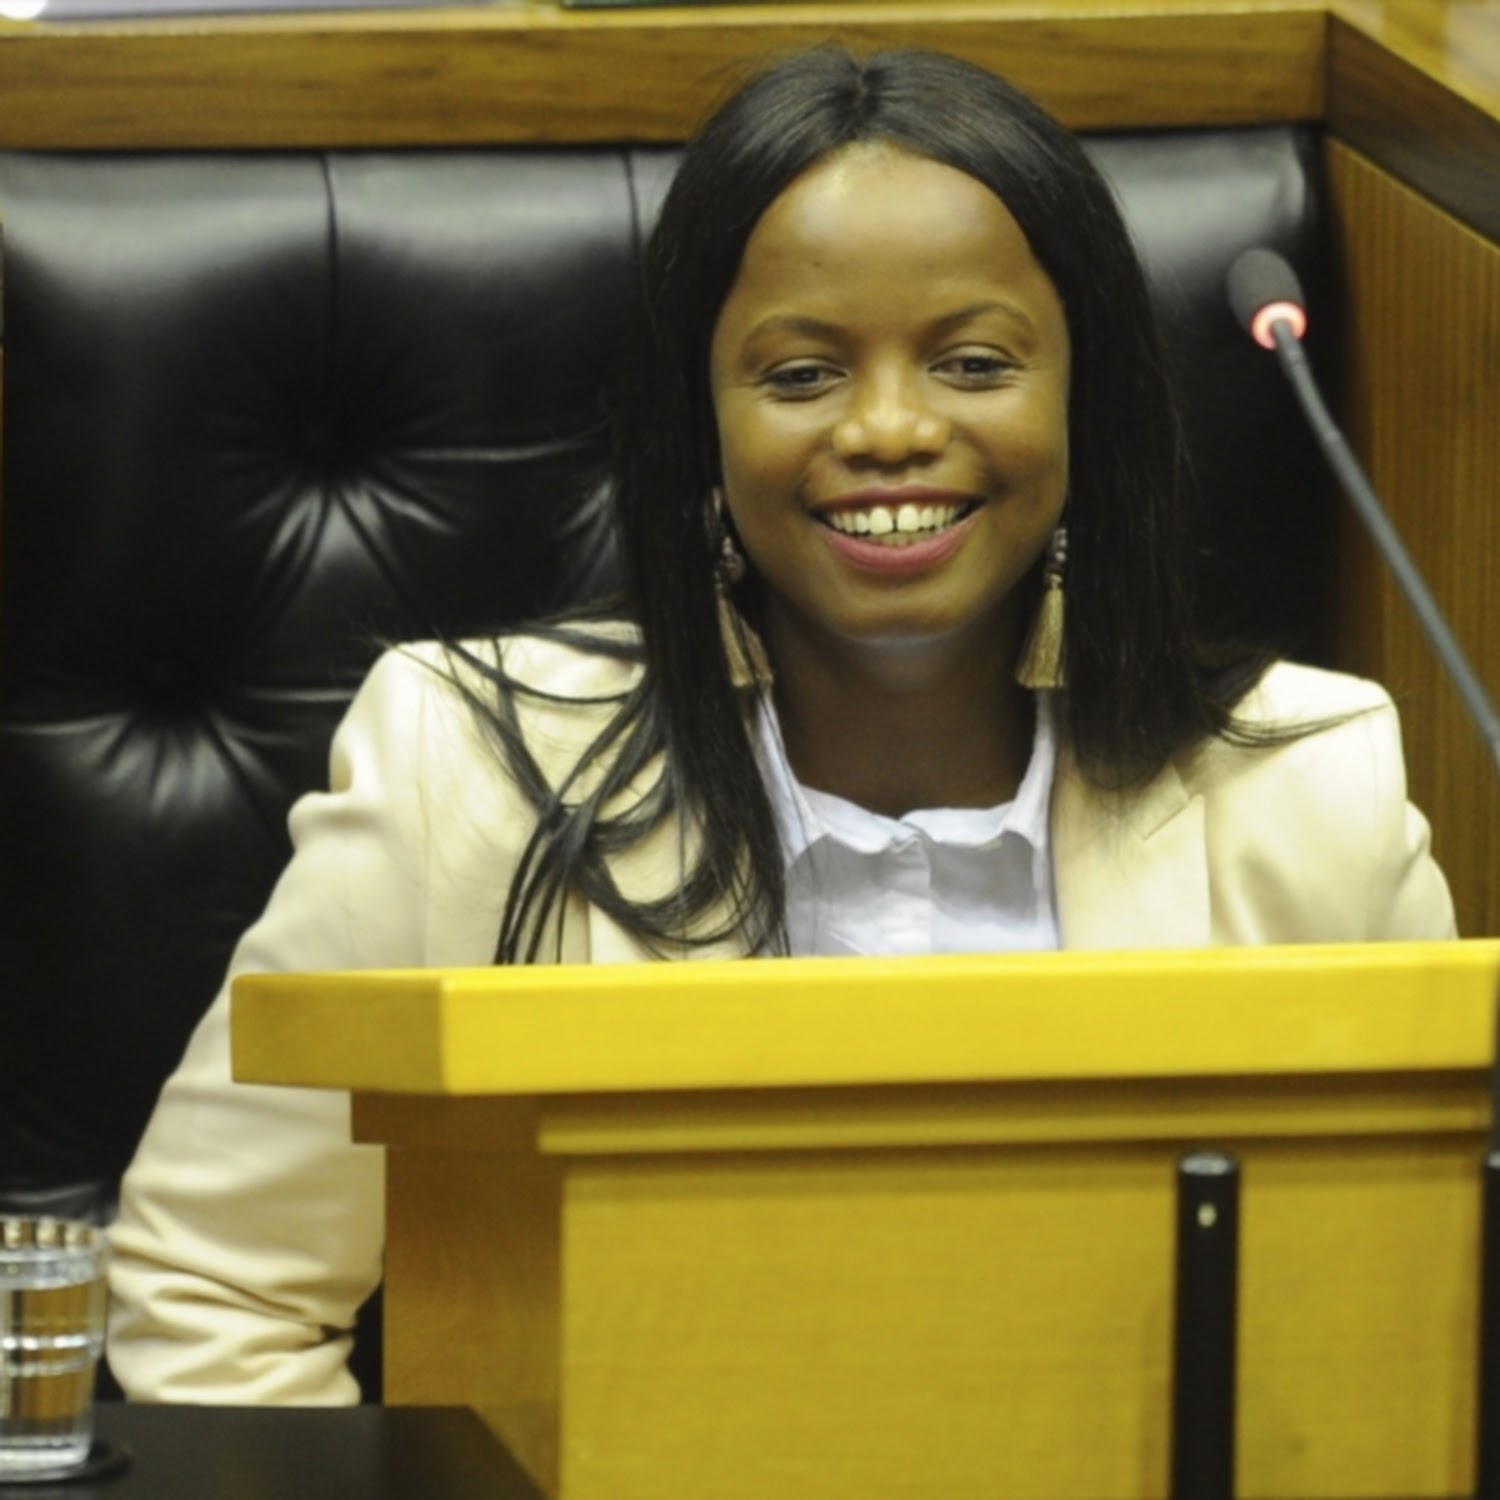 I D Rather Die Phumzile Van Damme Rubbishes Claims She Will Soon Sing The Eff Tune